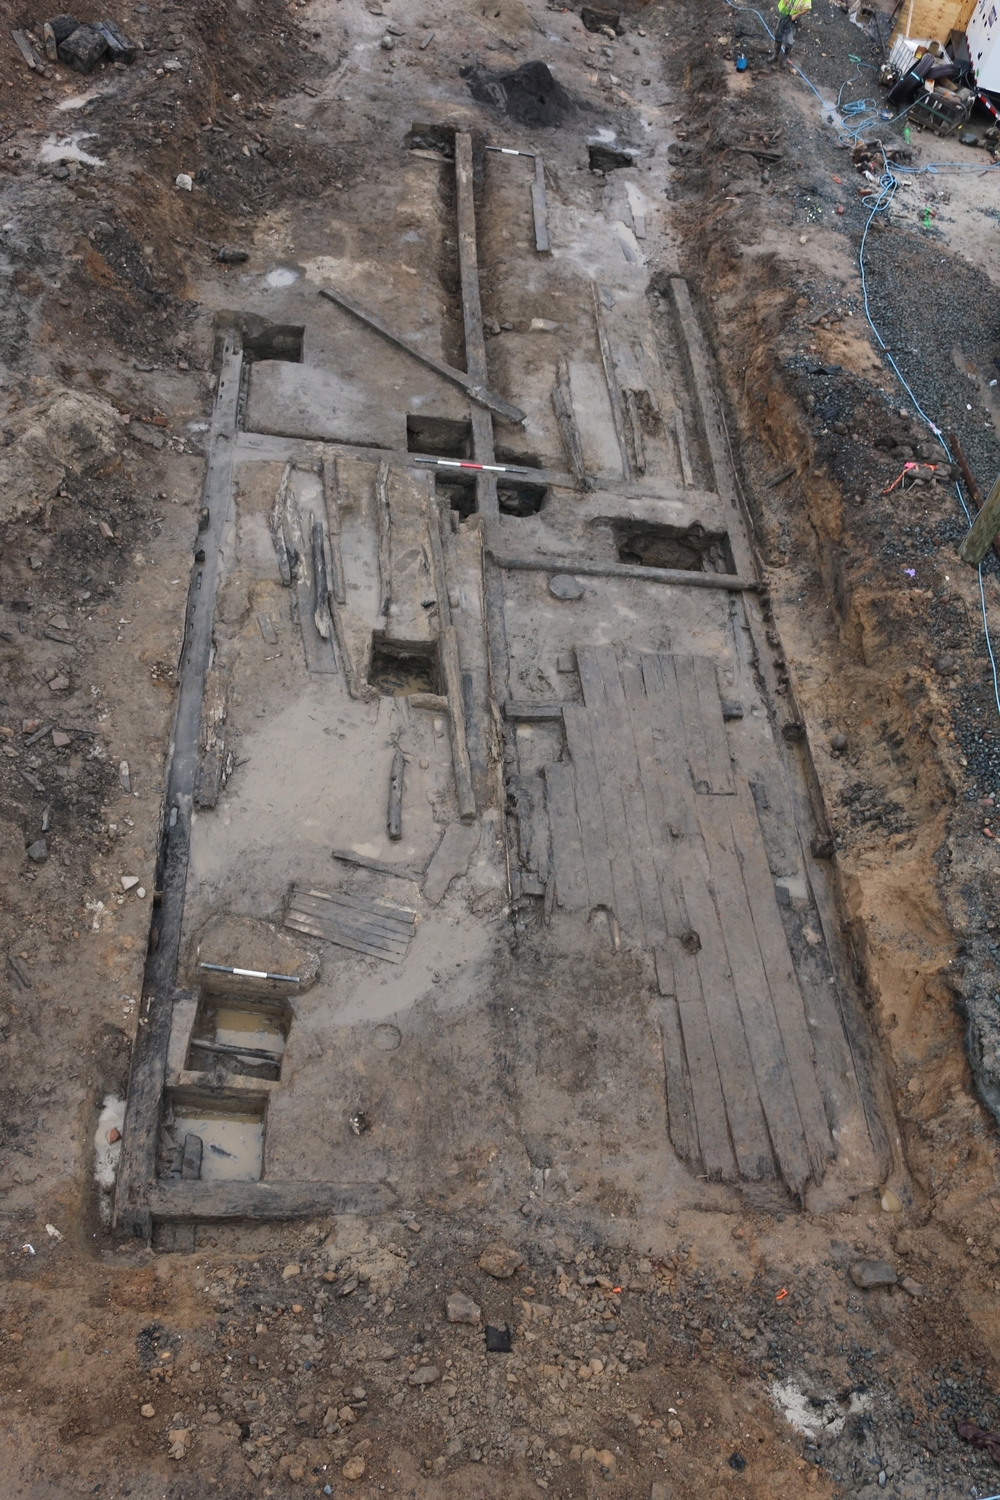 Aerial view of the remnants of the Carlyle warehouse, Alexandria's first public warehouse constructed around 1755.